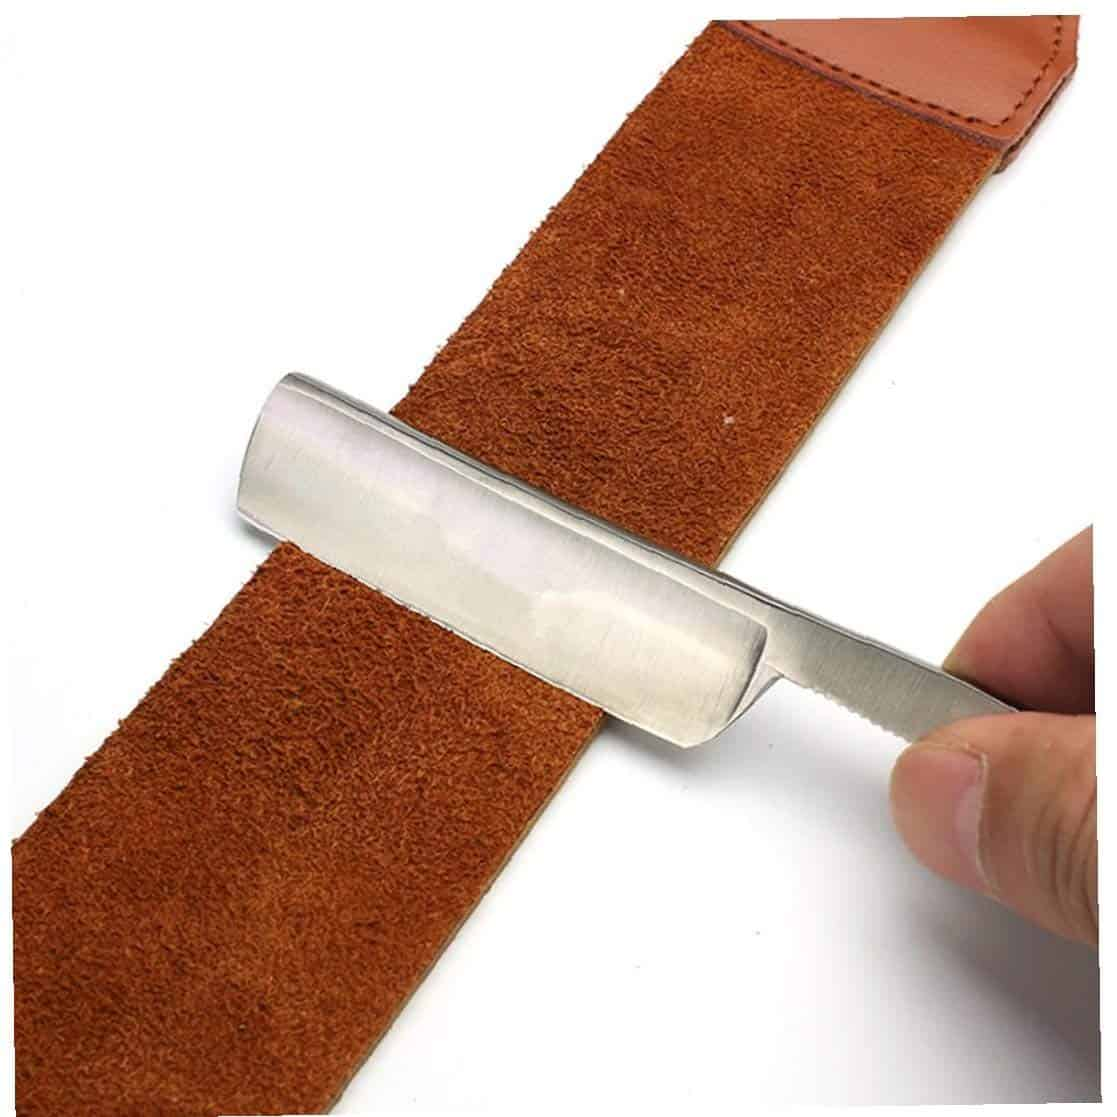 a straight razor with a belt